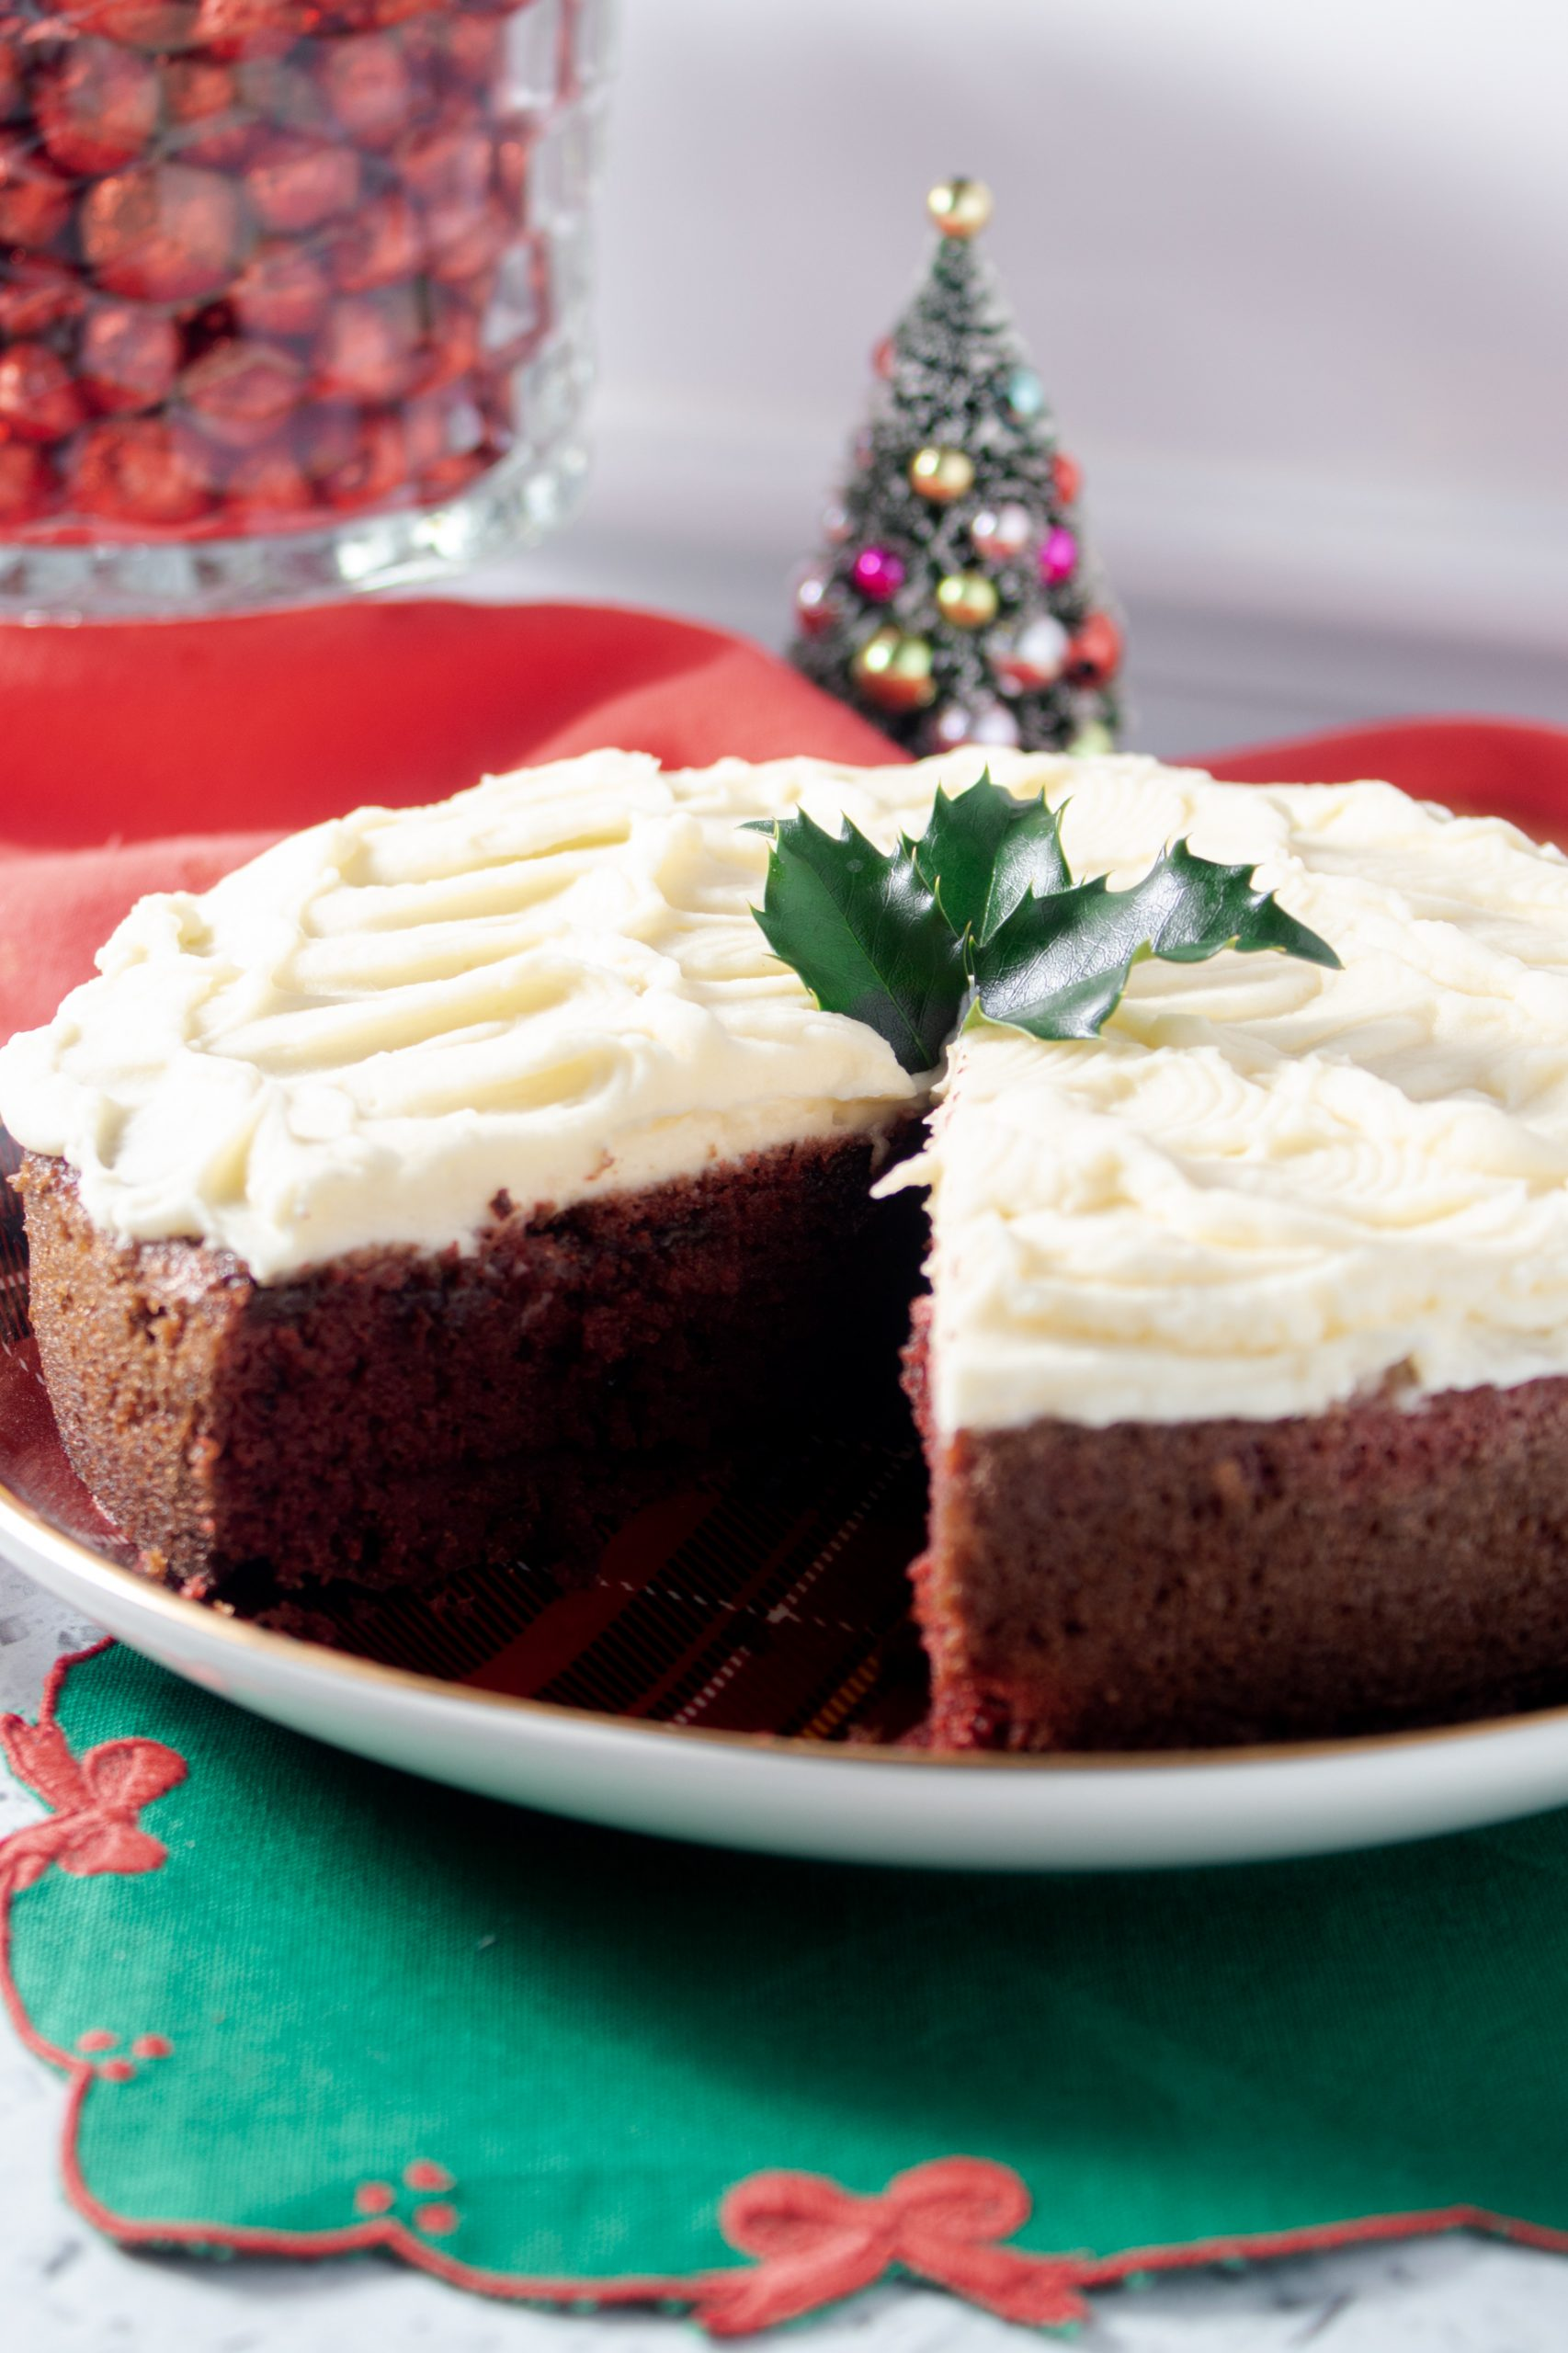 Festive low carb and sugar free red velvet cake.